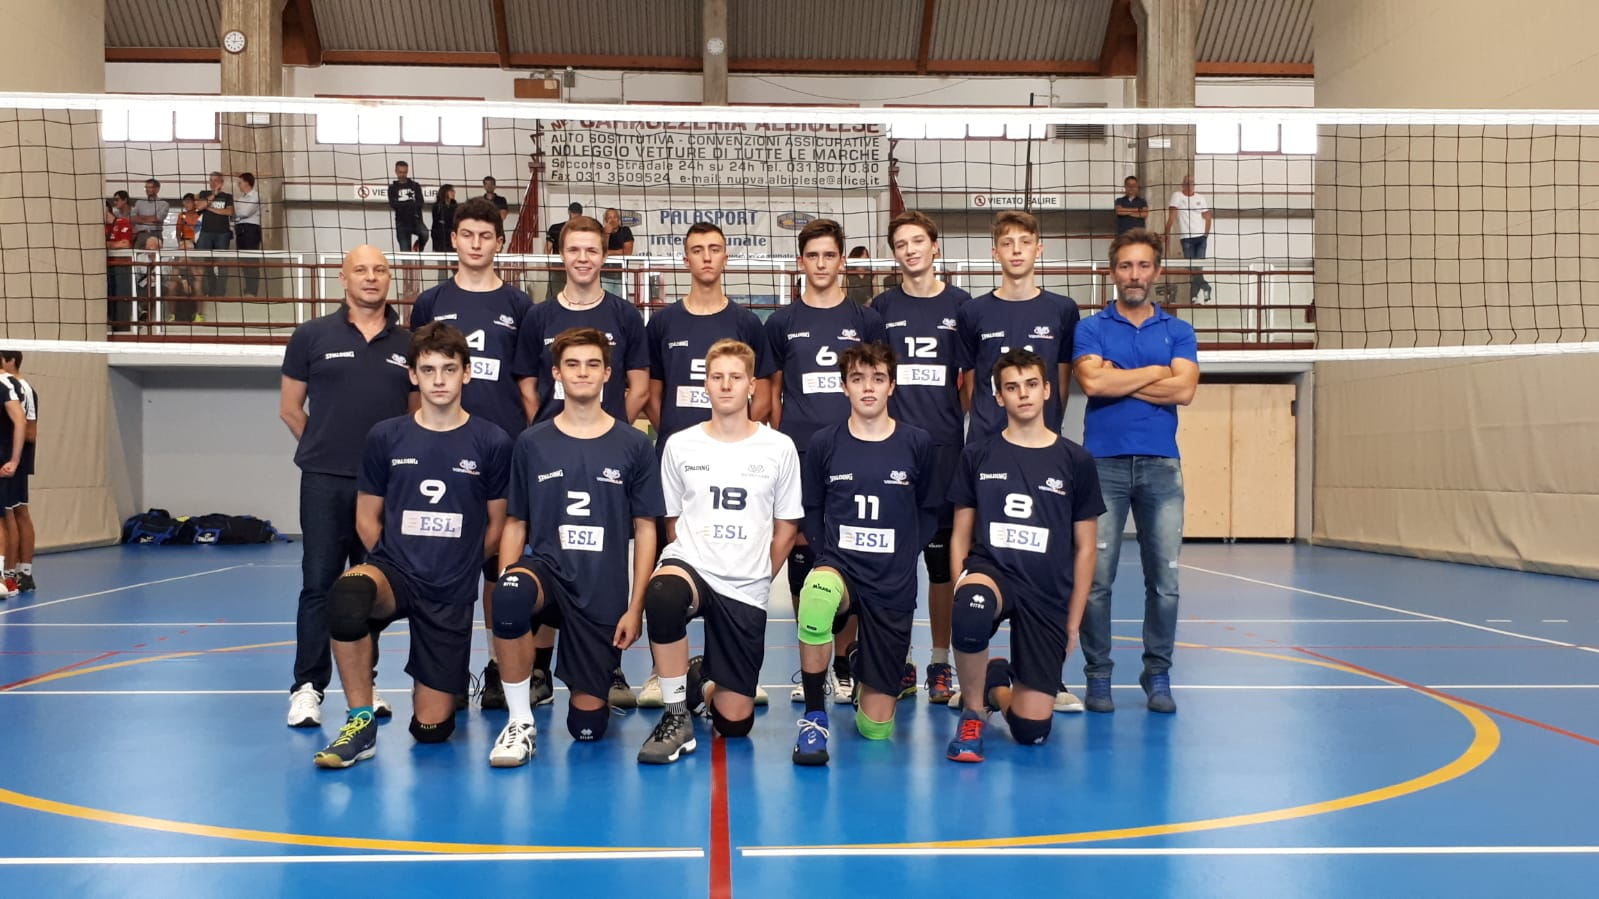 VOLLEY MILANO U18